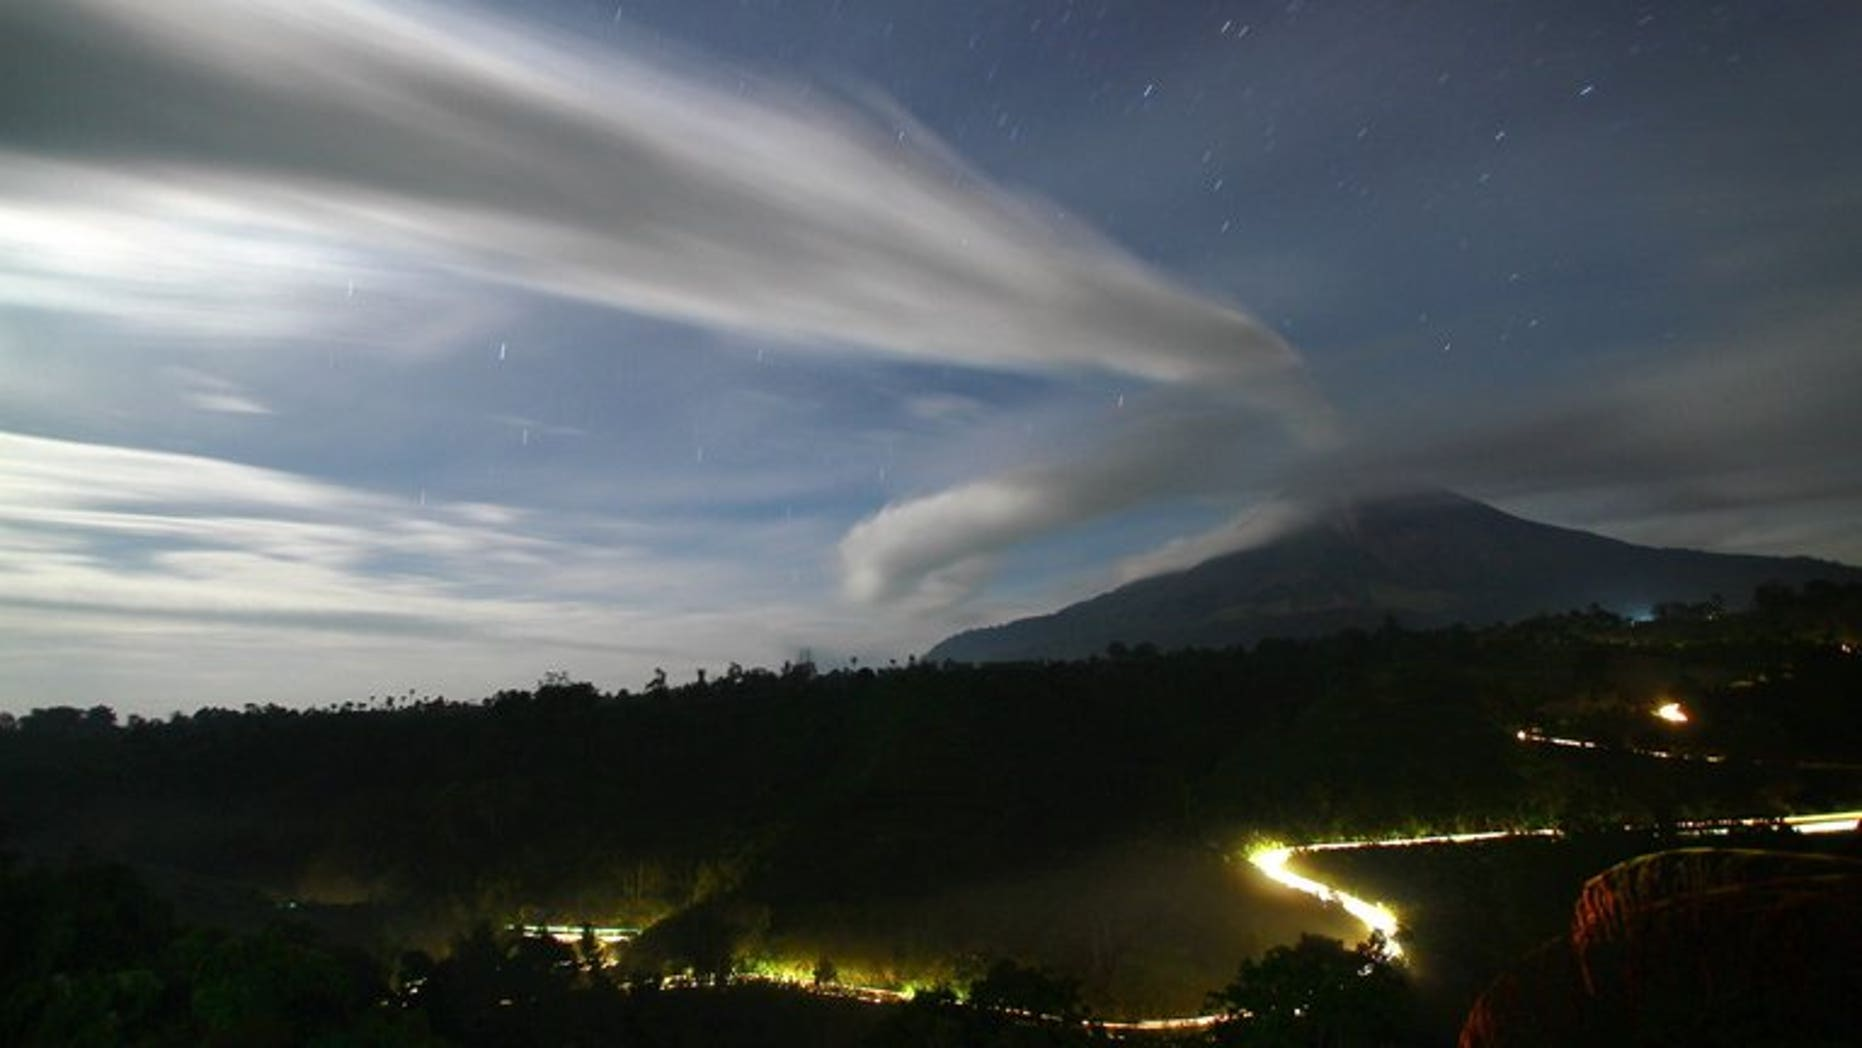 File picture shows plume of volcanic ash being emitted by Mount Sinabung in Tanah Karo district in North Sumatra province, seen under moon light from in this time exposure taken late September 16, 2010.